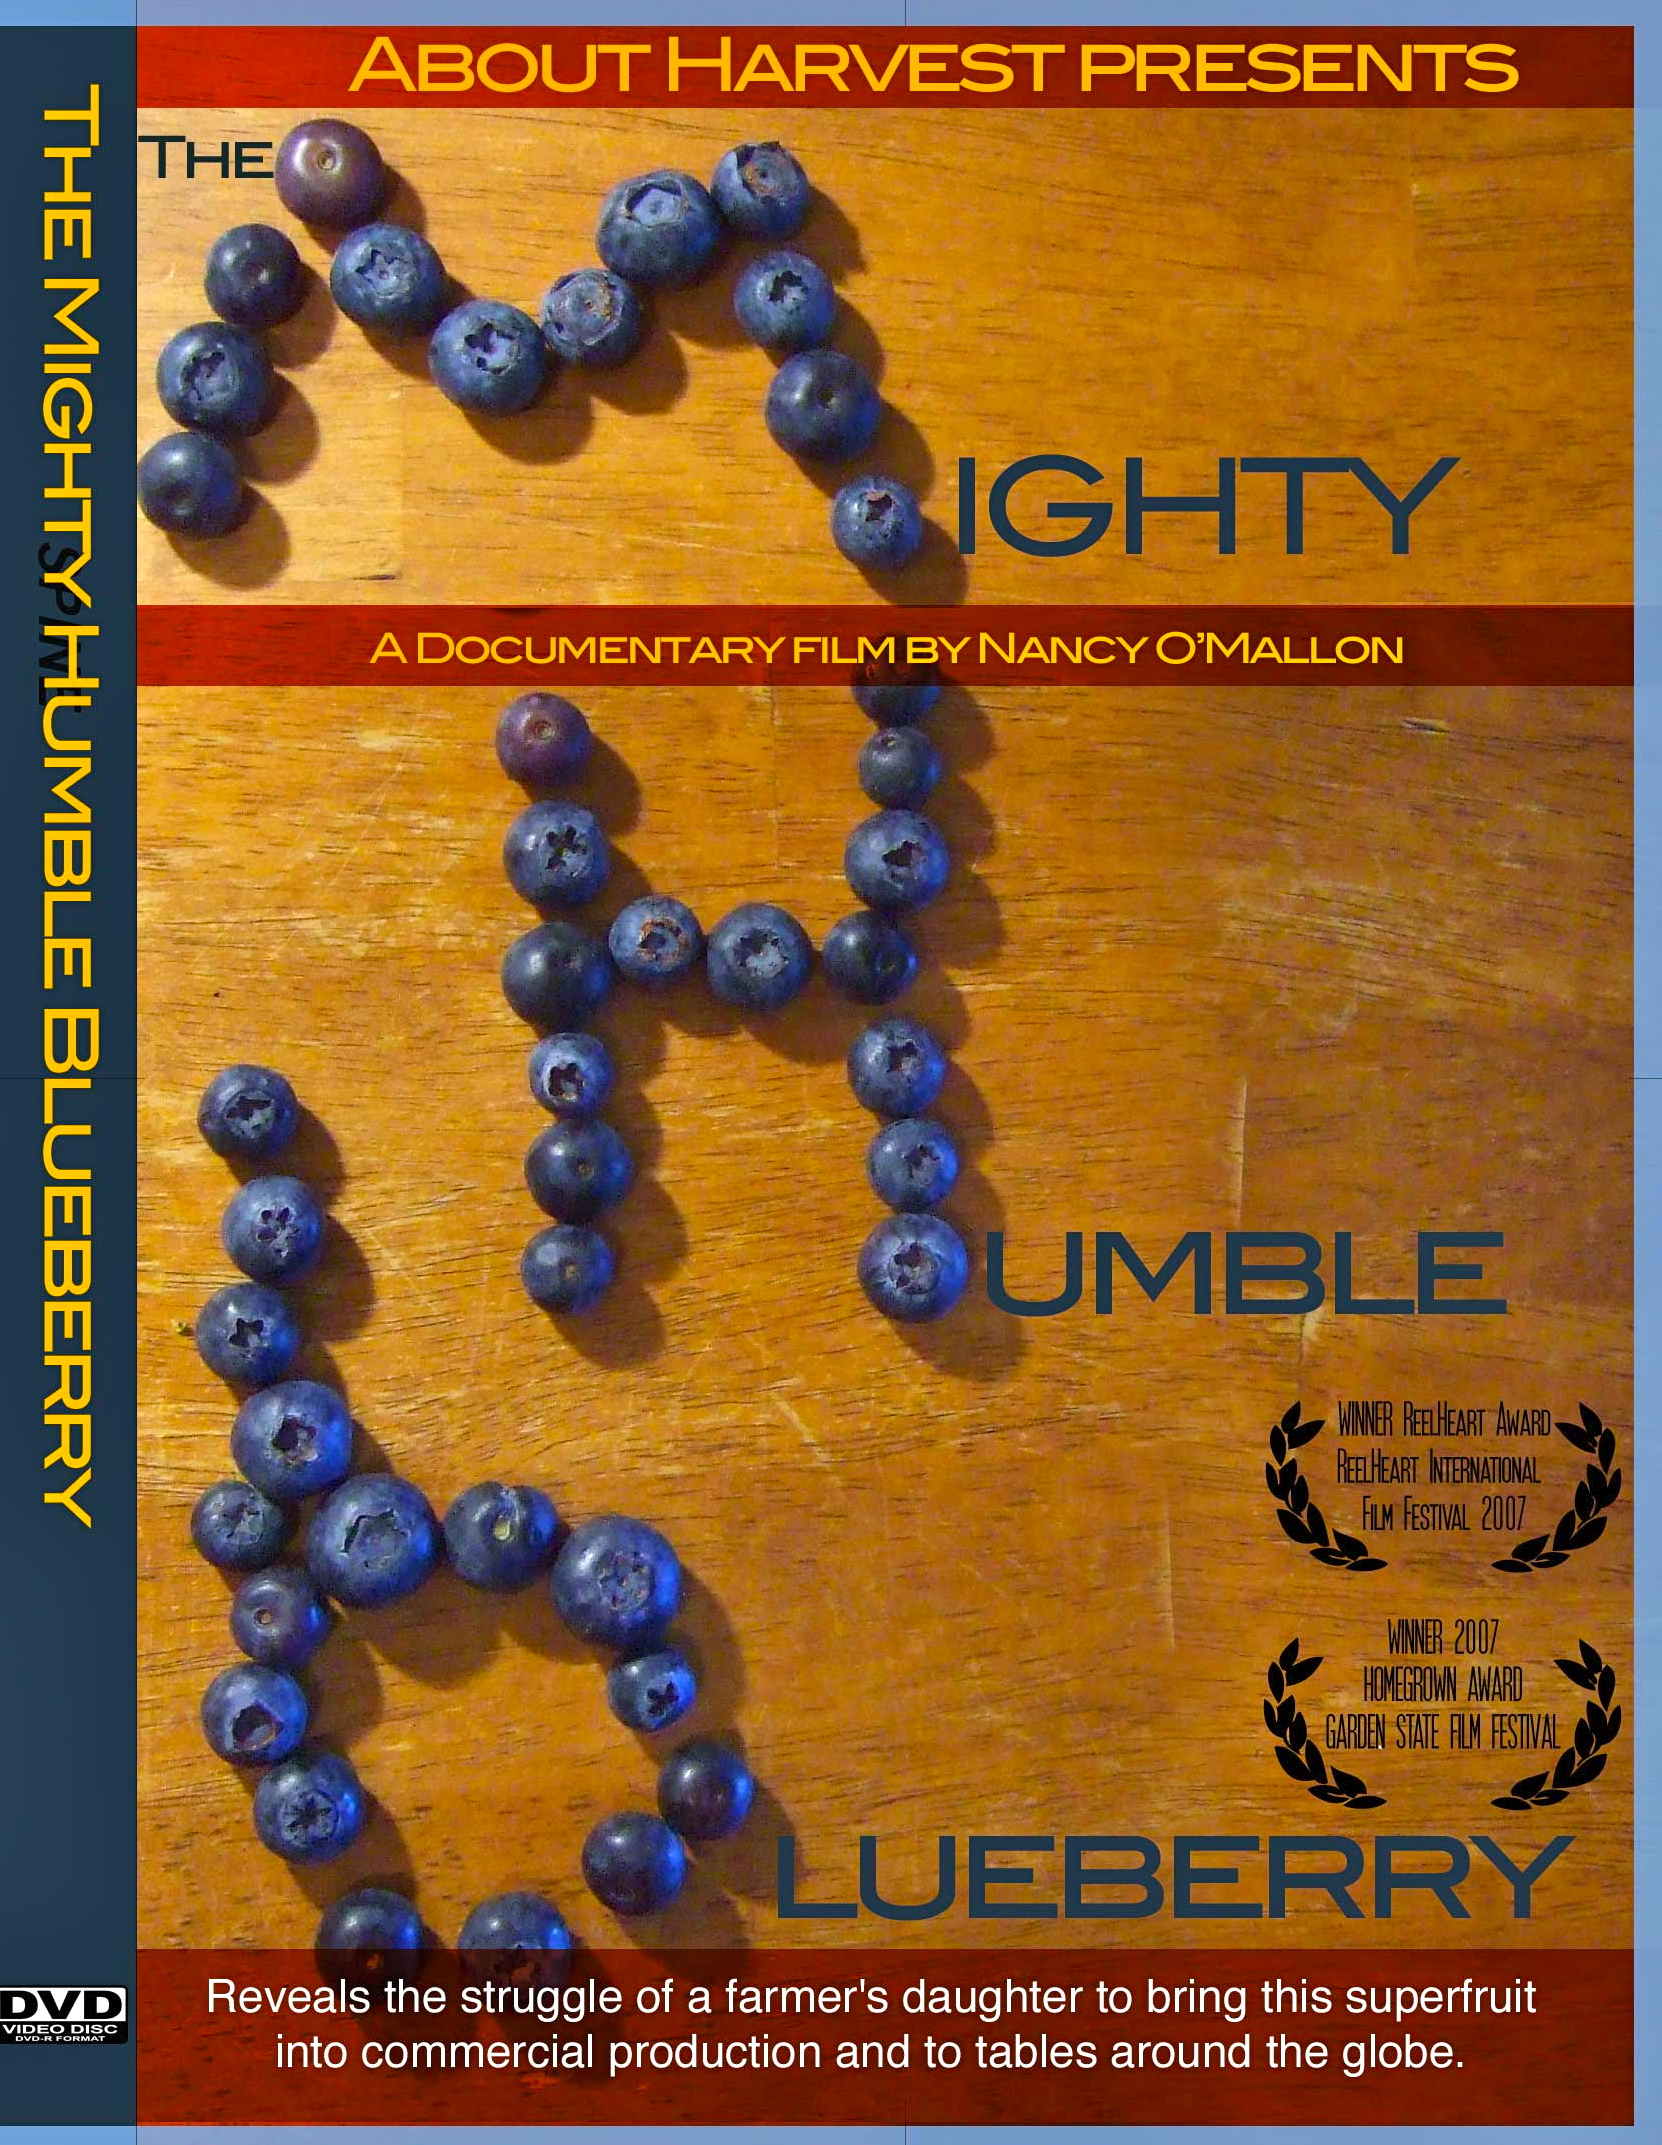 THE MIGHTY HUMBLE BLUEBERRY | Soundview Media Partners LLC